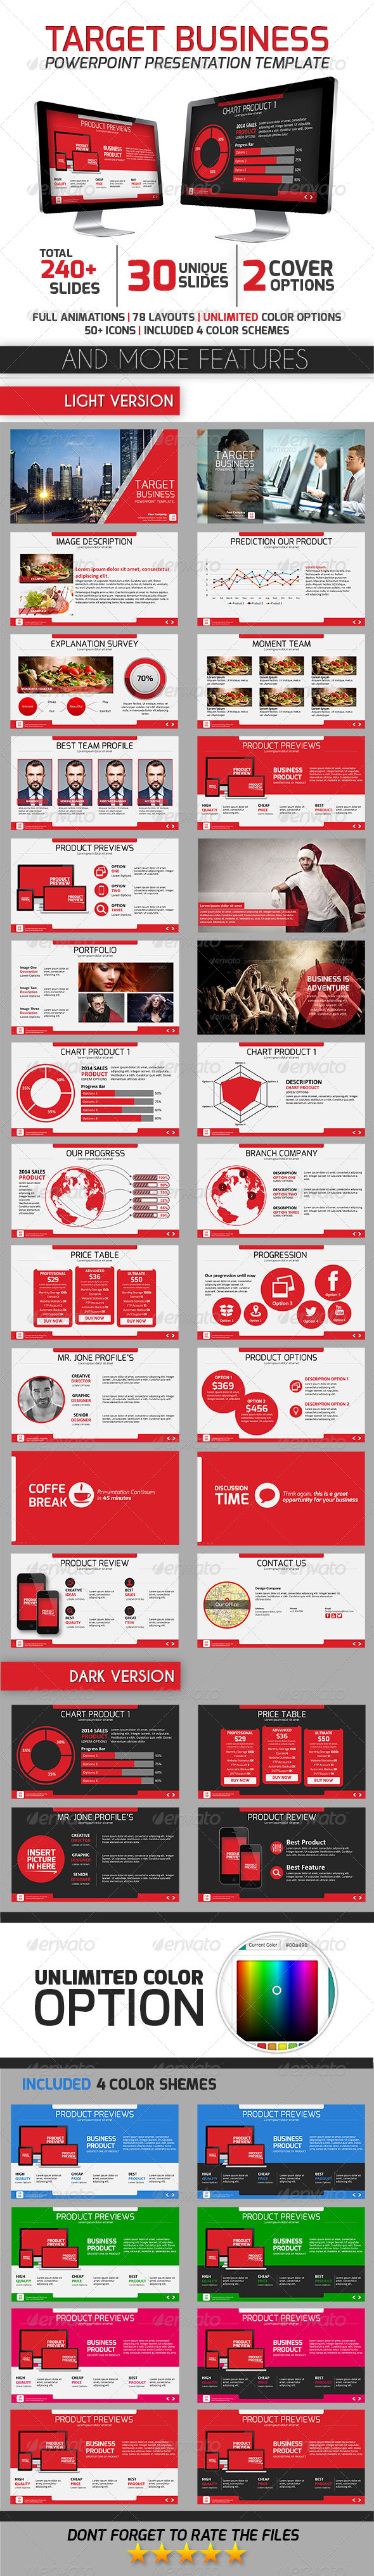 GraphicRiver Target Business 8007922